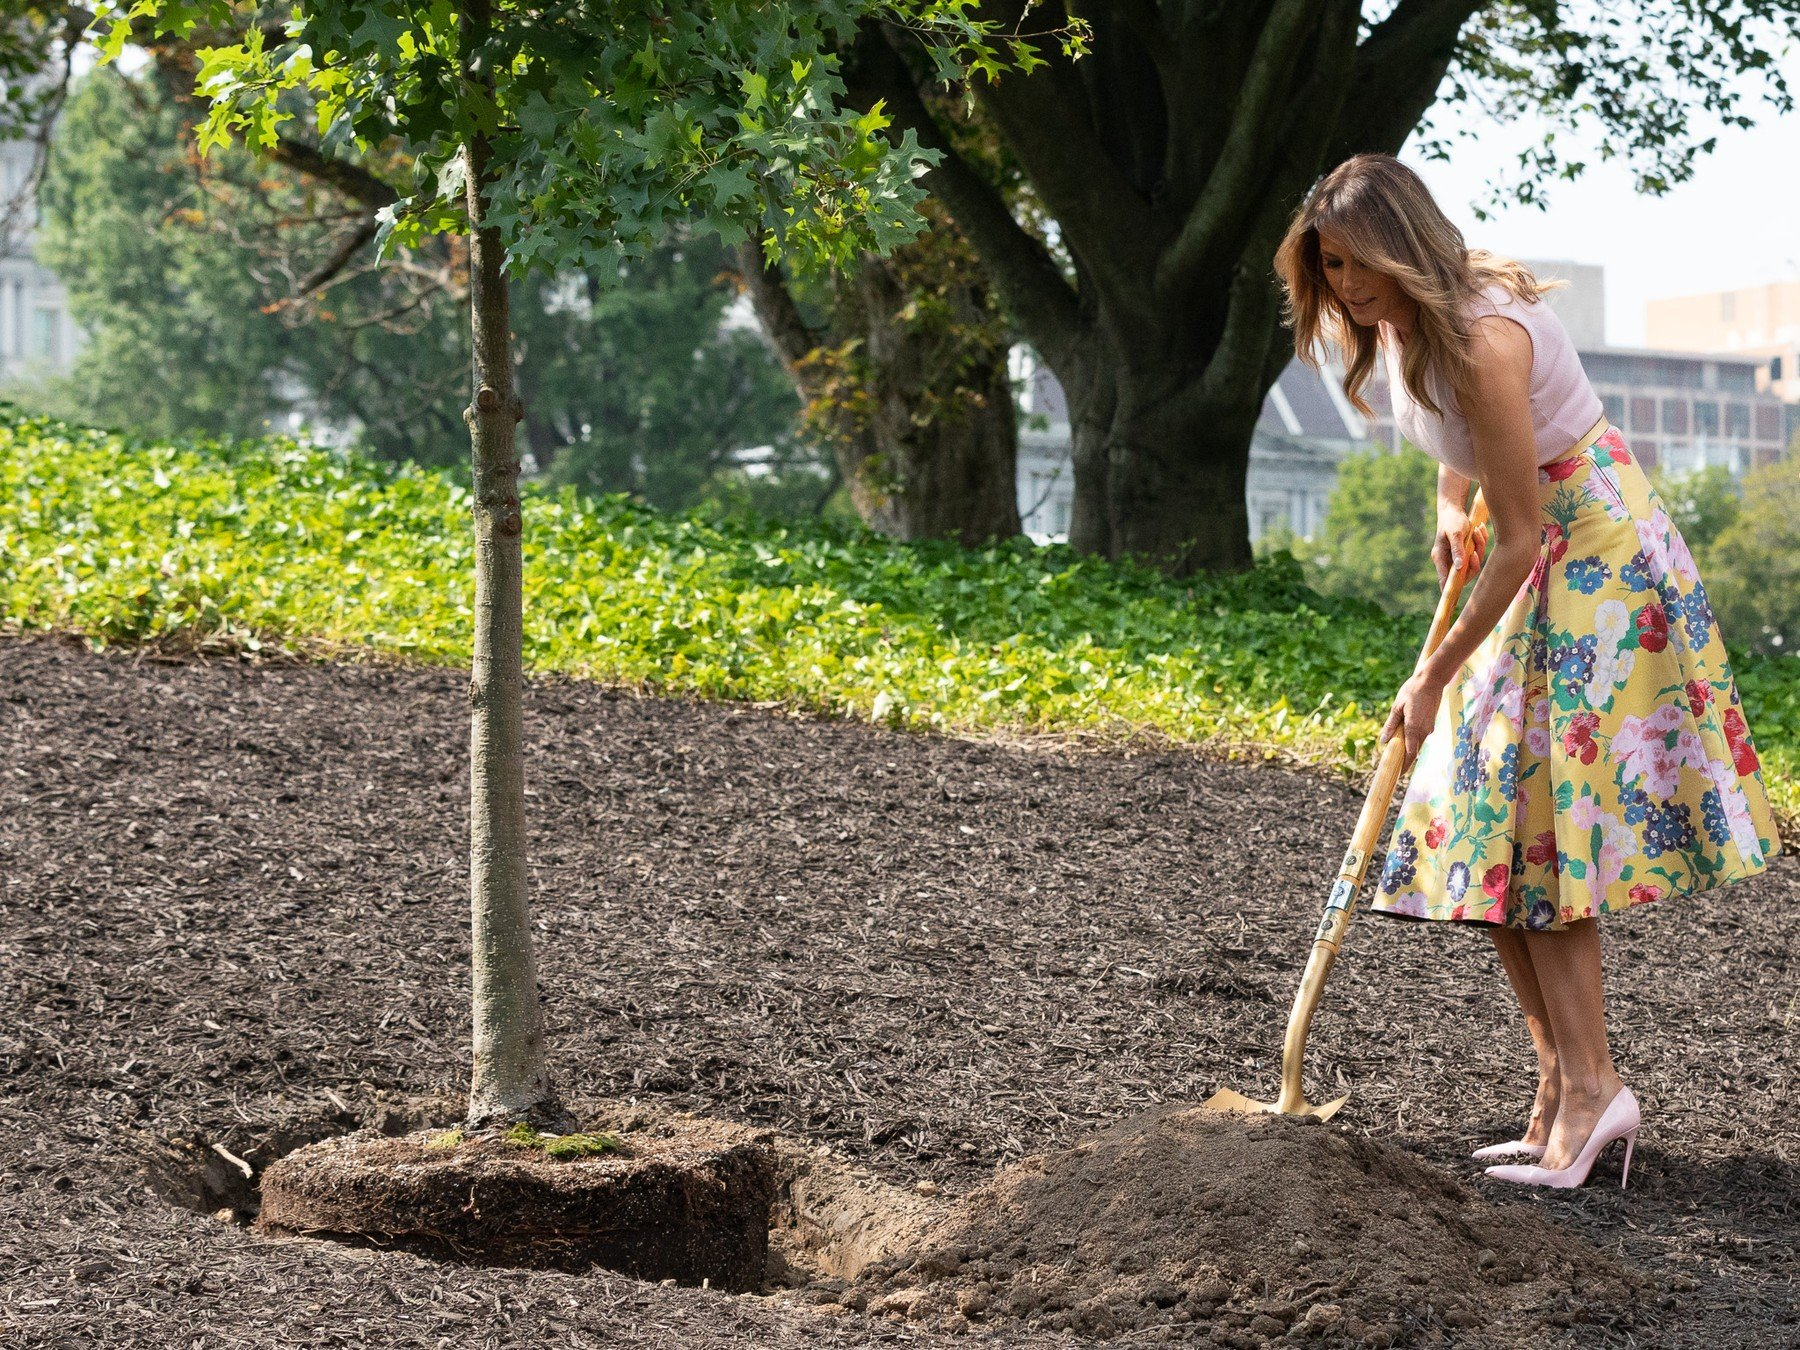 First Lady Melania Trump participates in a White House Historical Association tree planting on the South Lawn of the White House. The sapling was taken from the Eisenhower Oak located near the Kennedy Garden | August 27, 2018 (Photo by Andrea Hanks/White House)    Please note: Fees charged by the agency are for the agency's services only, and do not, nor are they intended to, convey to the user any ownership of Copyright or License in the material. The agency does not claim any ownership including but not limited to Copyright or License in the attached material. By publishing this material you expressly agree to indemnify and to hold the agency and its directors, shareholders and employees harmless from any loss, claims, damages, demands, expenses (including legal fees), or any causes of action or allegation against the agency arising out of or connected in any way with publication of the material., Image: 385279332, License: Rights-managed, Restrictions: *** Editorial Use Only ***, Model Release: no, Credit line: Profimedia, SIPA USA